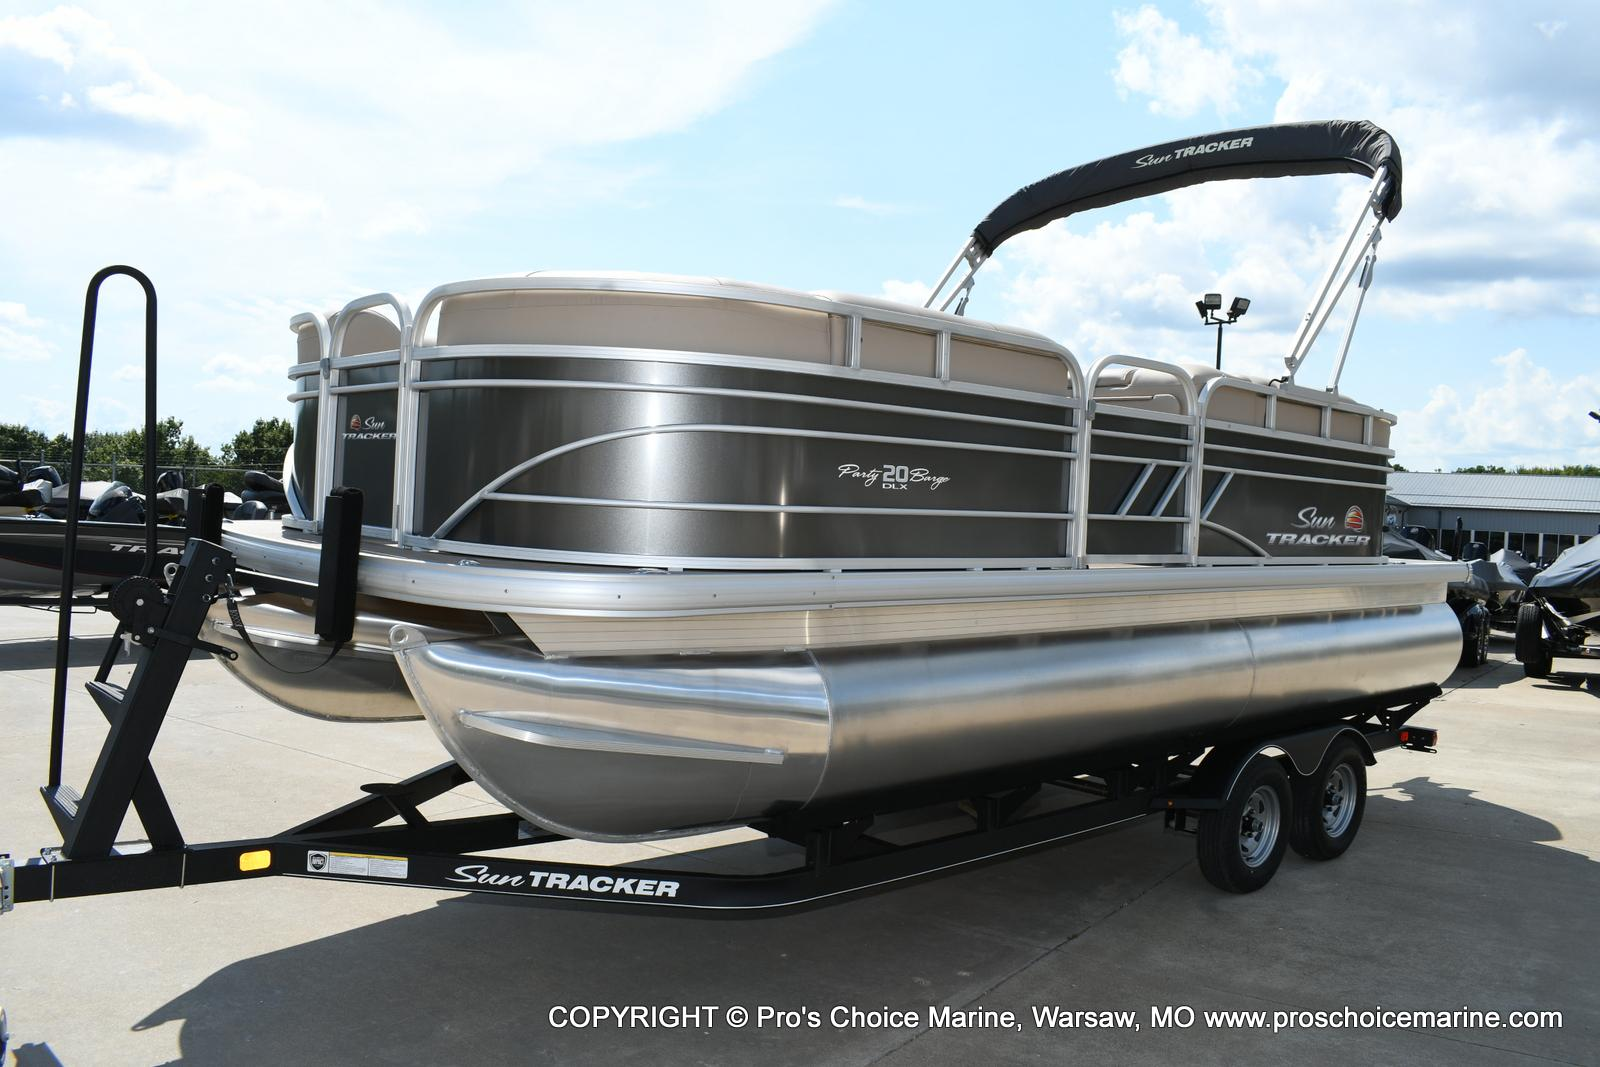 2020 Sun Tracker boat for sale, model of the boat is Party Barge 20 DLX & Image # 33 of 50